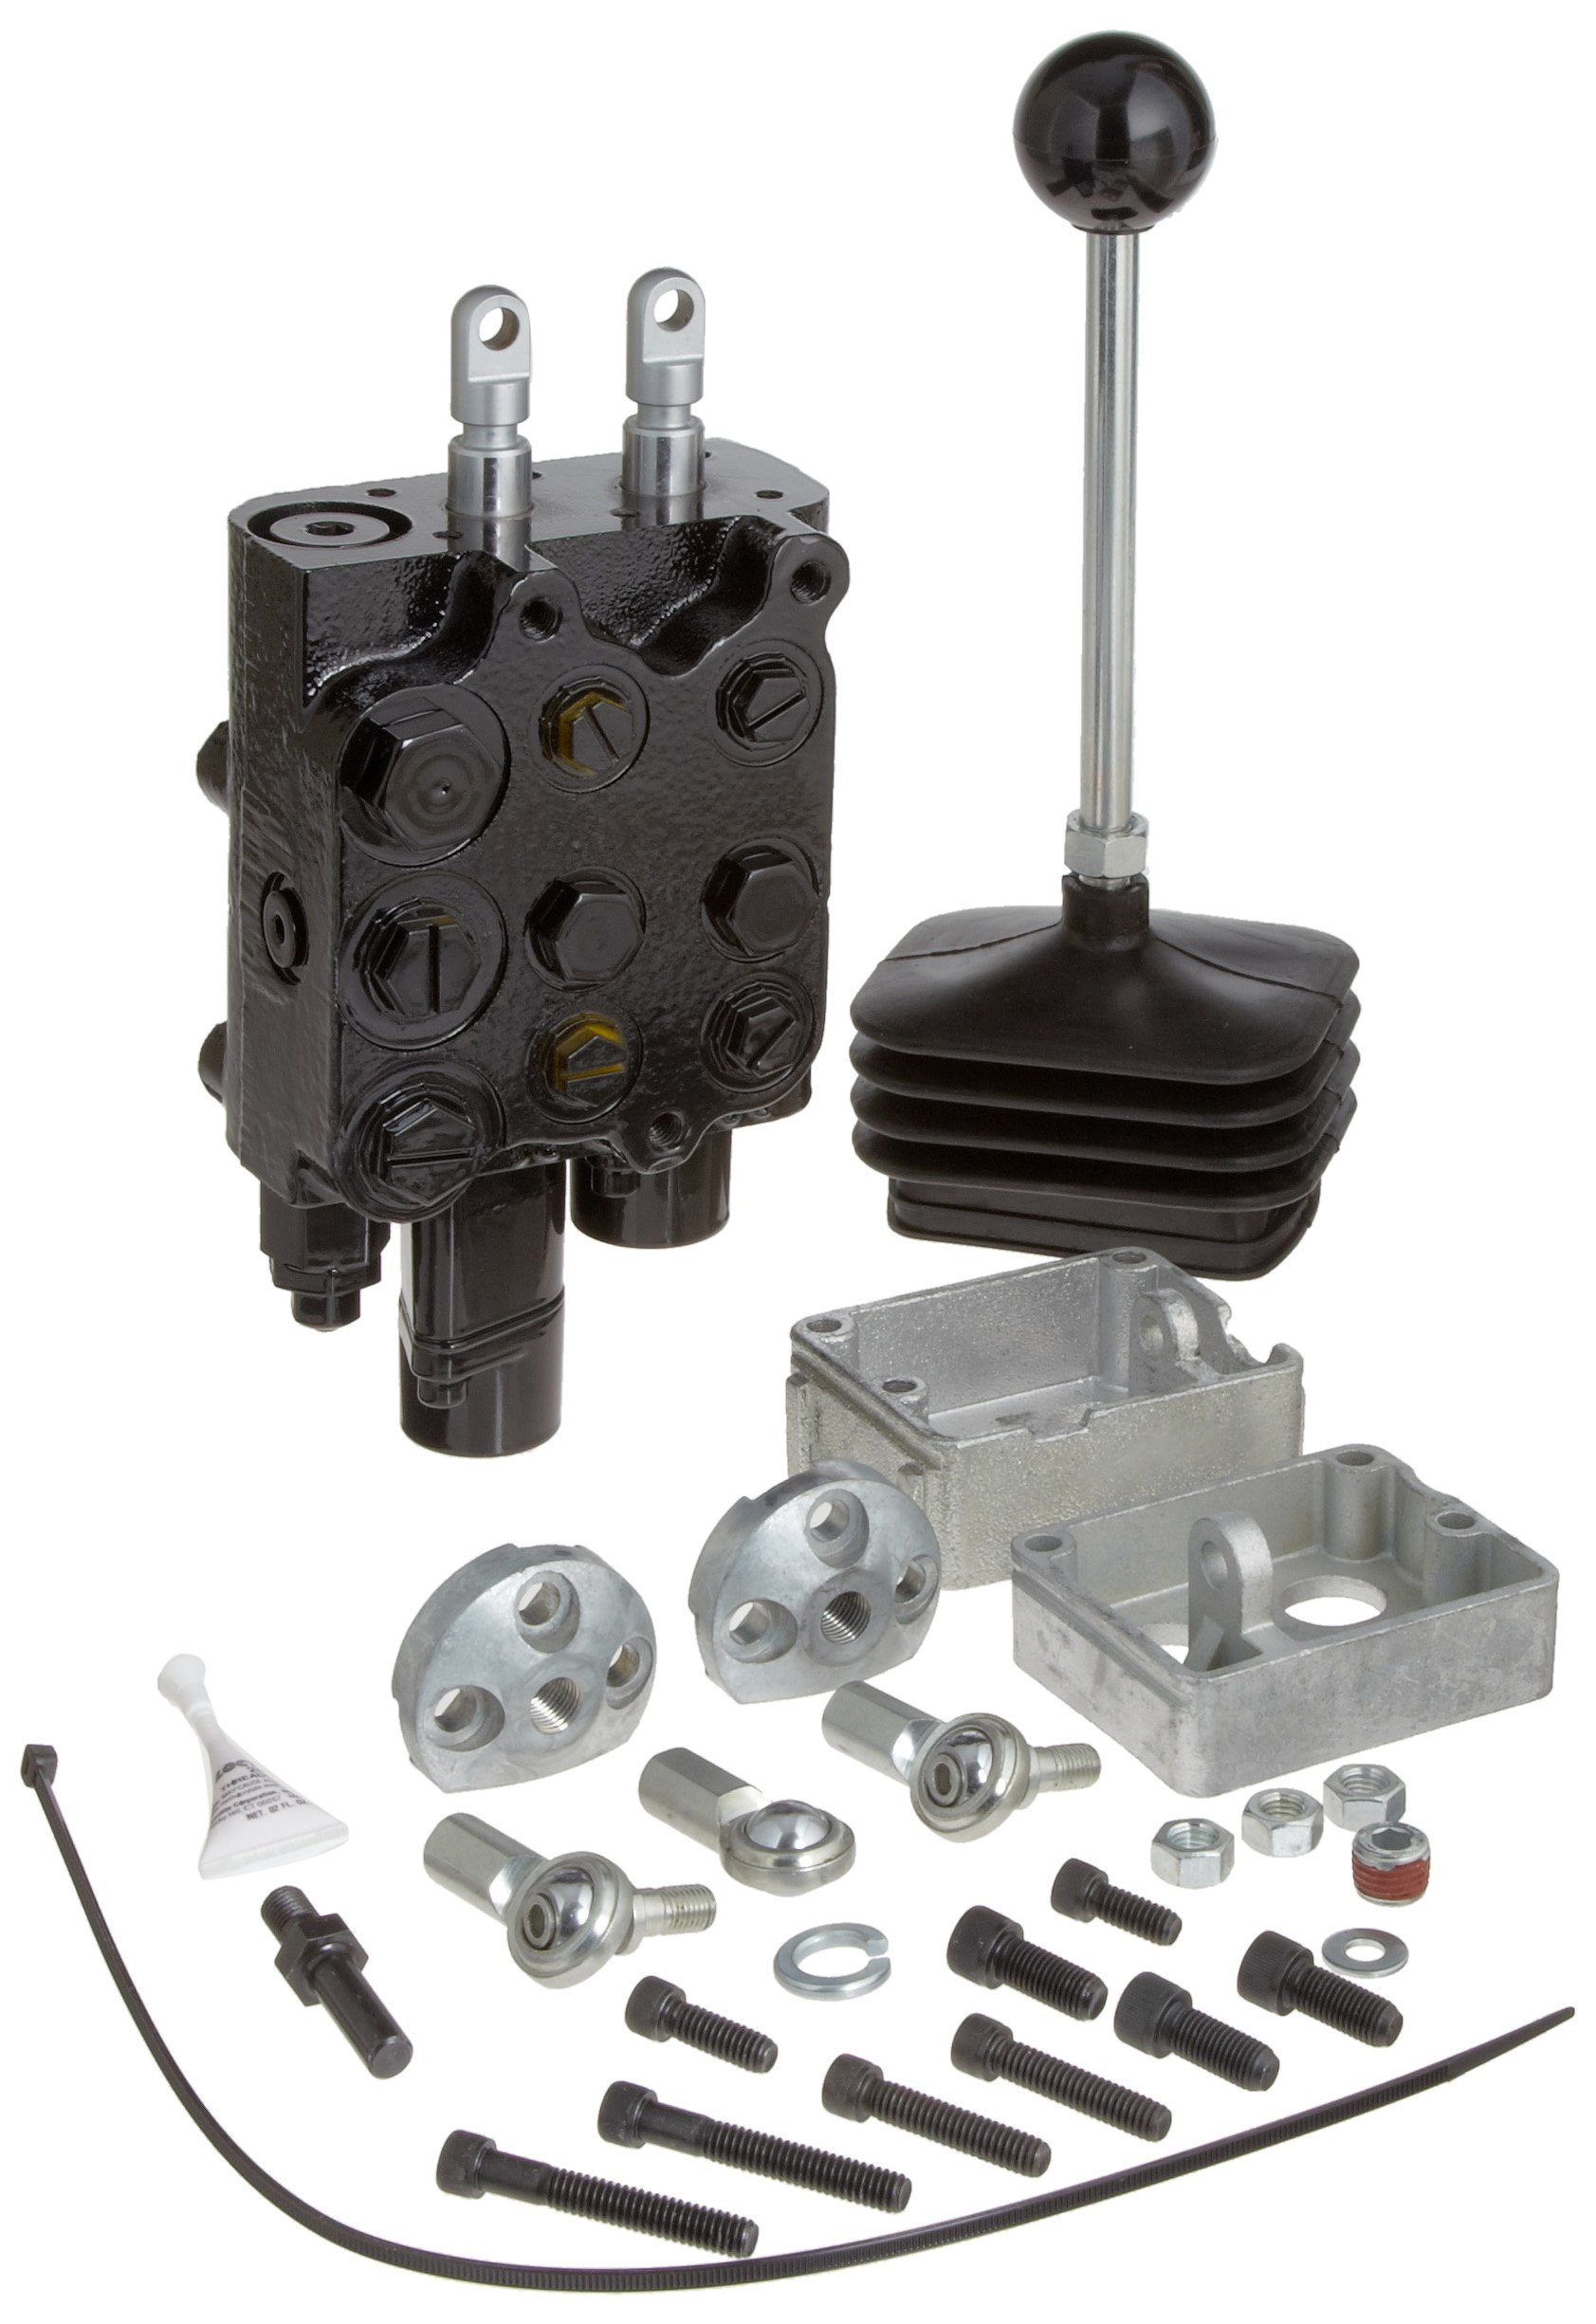 Prince LVT1GB5AB7 Loader Valve, Monoblock, Cast Iron, 2 Spool, 4 Ways, 4 Positions, Single Acting Cylinder Spool, Spring Center with Float Detent, Joystick Handle, 3000 psi, 10 gpm, In/Out: #8 SAE, Work #6 SAE